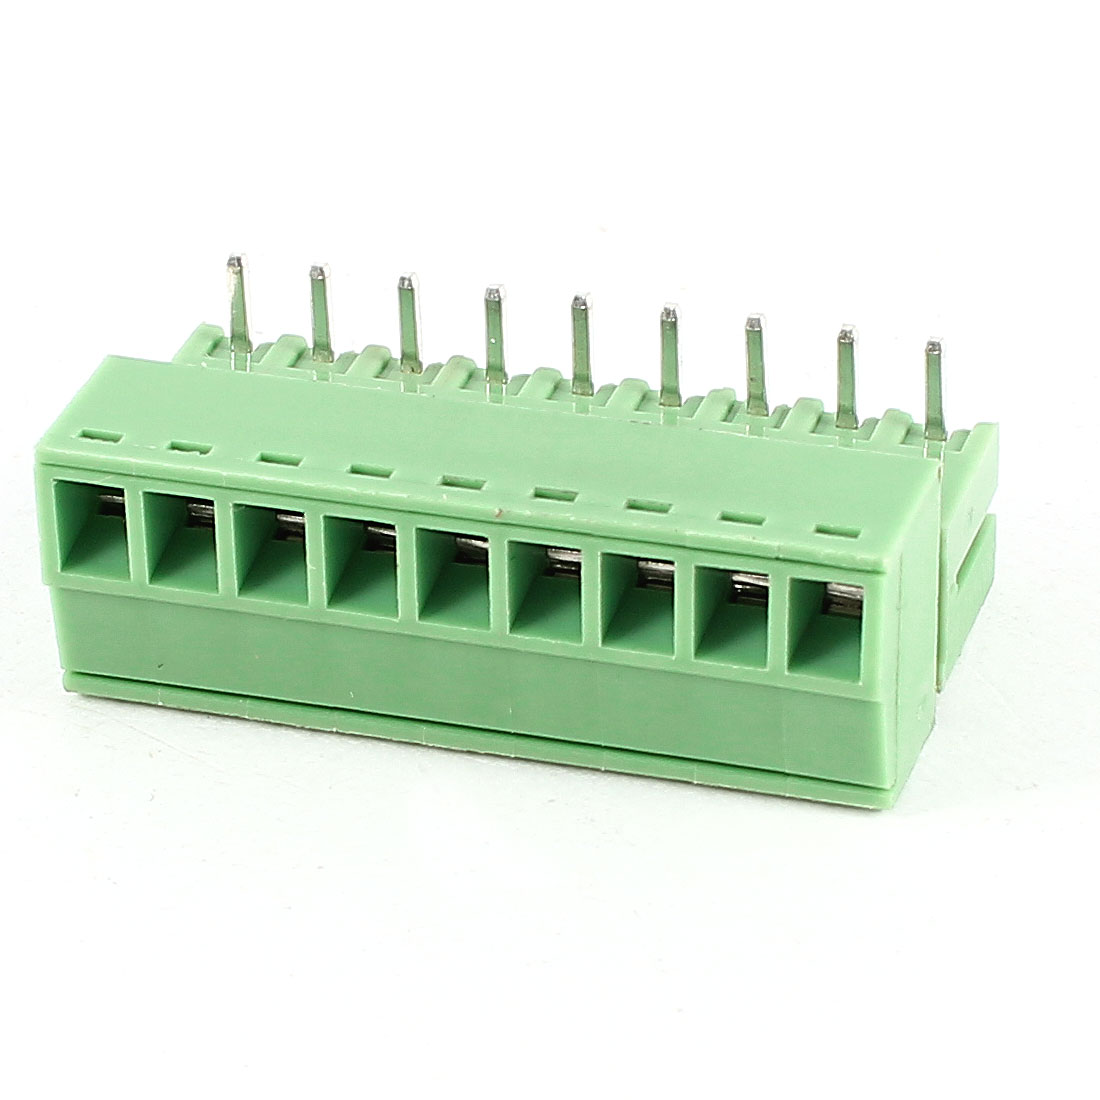 Green 9Pin 3.5mm Spacing PCB Screw Terminal Block Connector 300V 8A AWG22-16